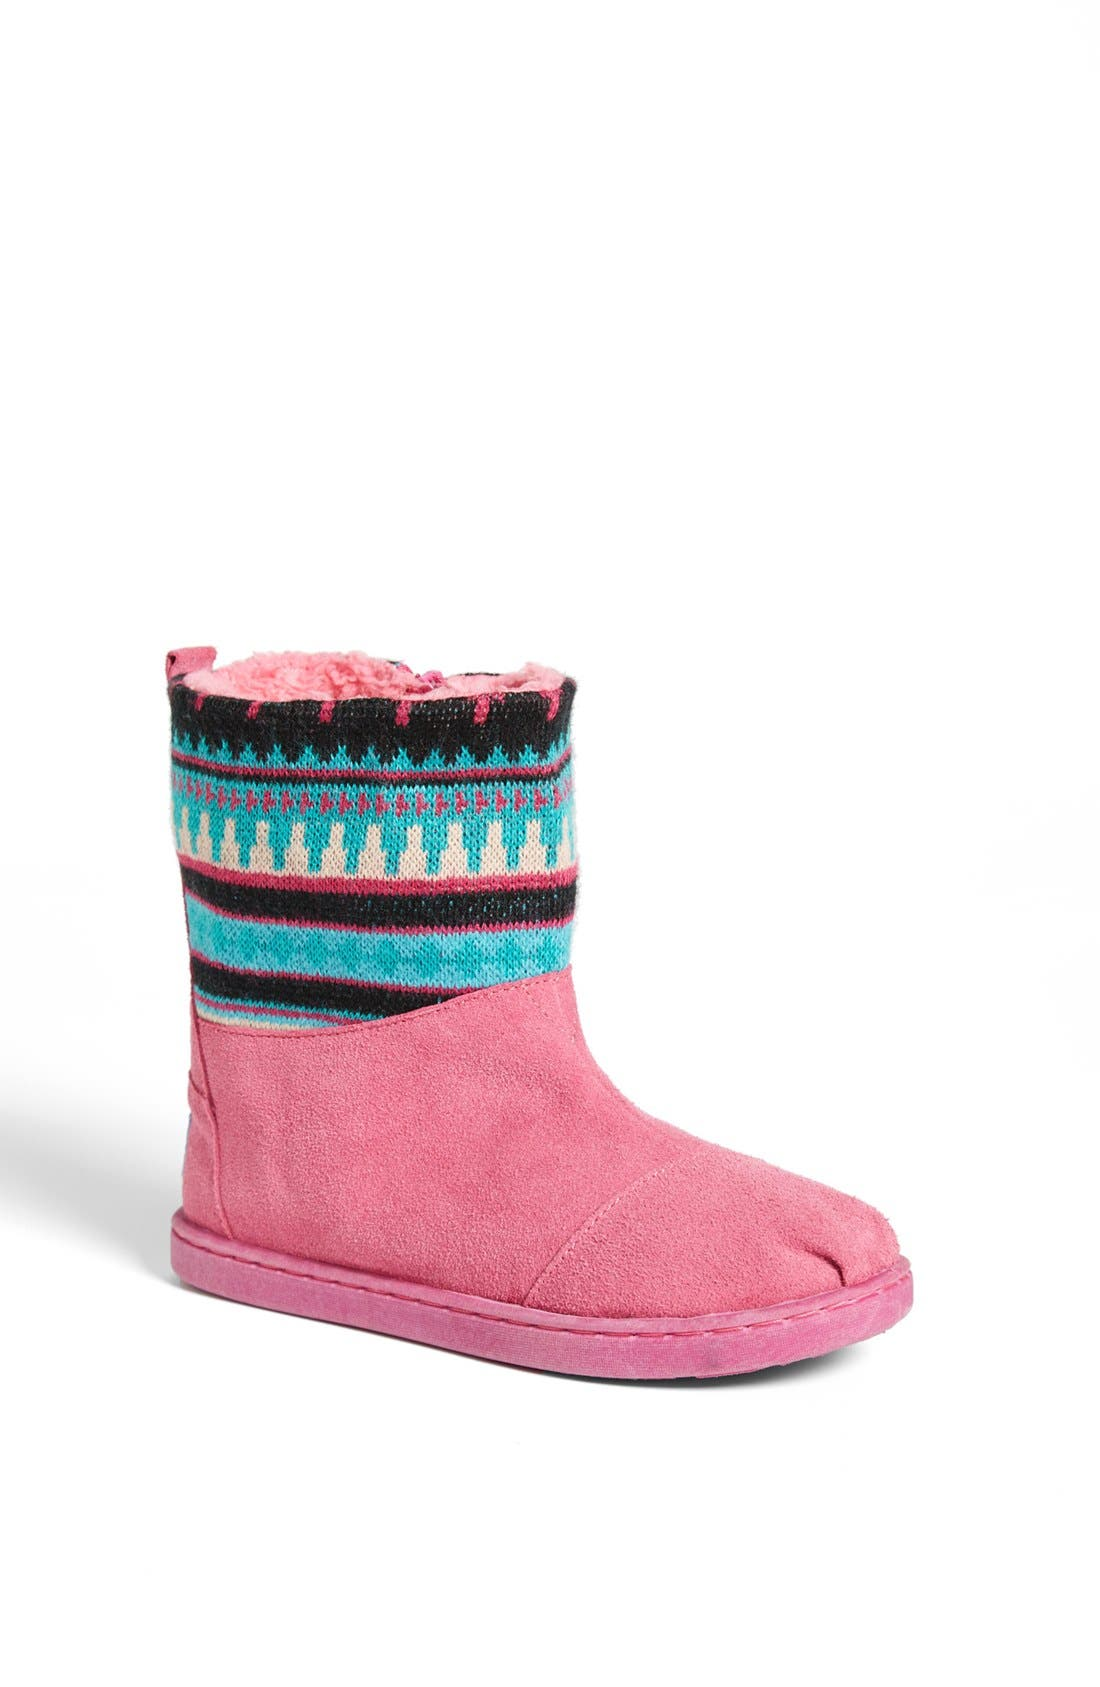 Main Image - TOMS 'Nepal - Youth' Knit Shaft Boot (Toddler, Little Kid & Big Kid)